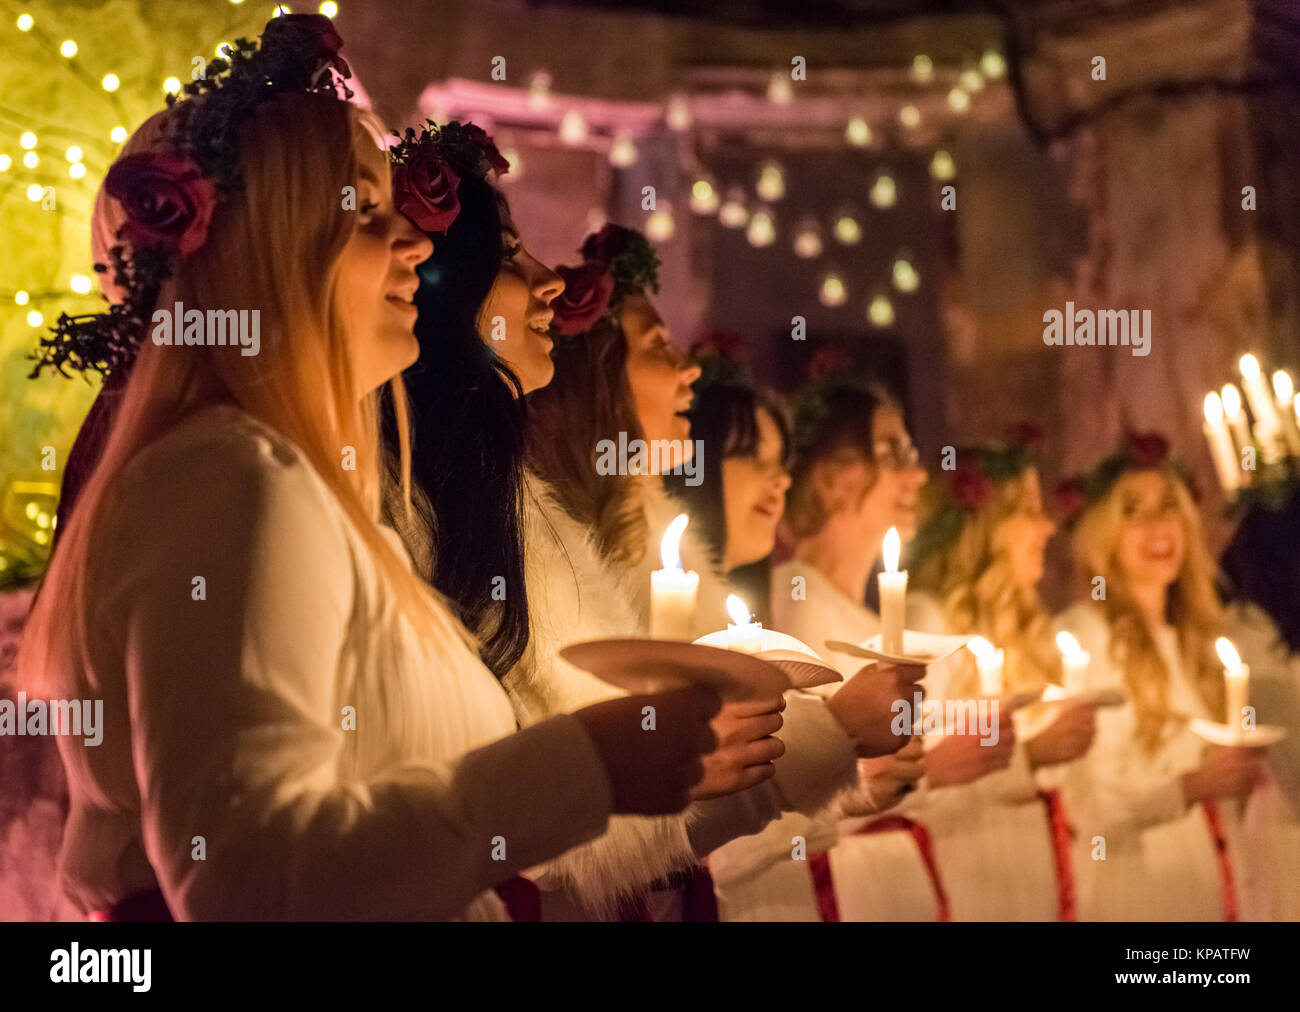 London, UK. 14th December, 2017. Swedish choir with candles and head wreaths celebrating the Scandinavian tradition - Stock Image